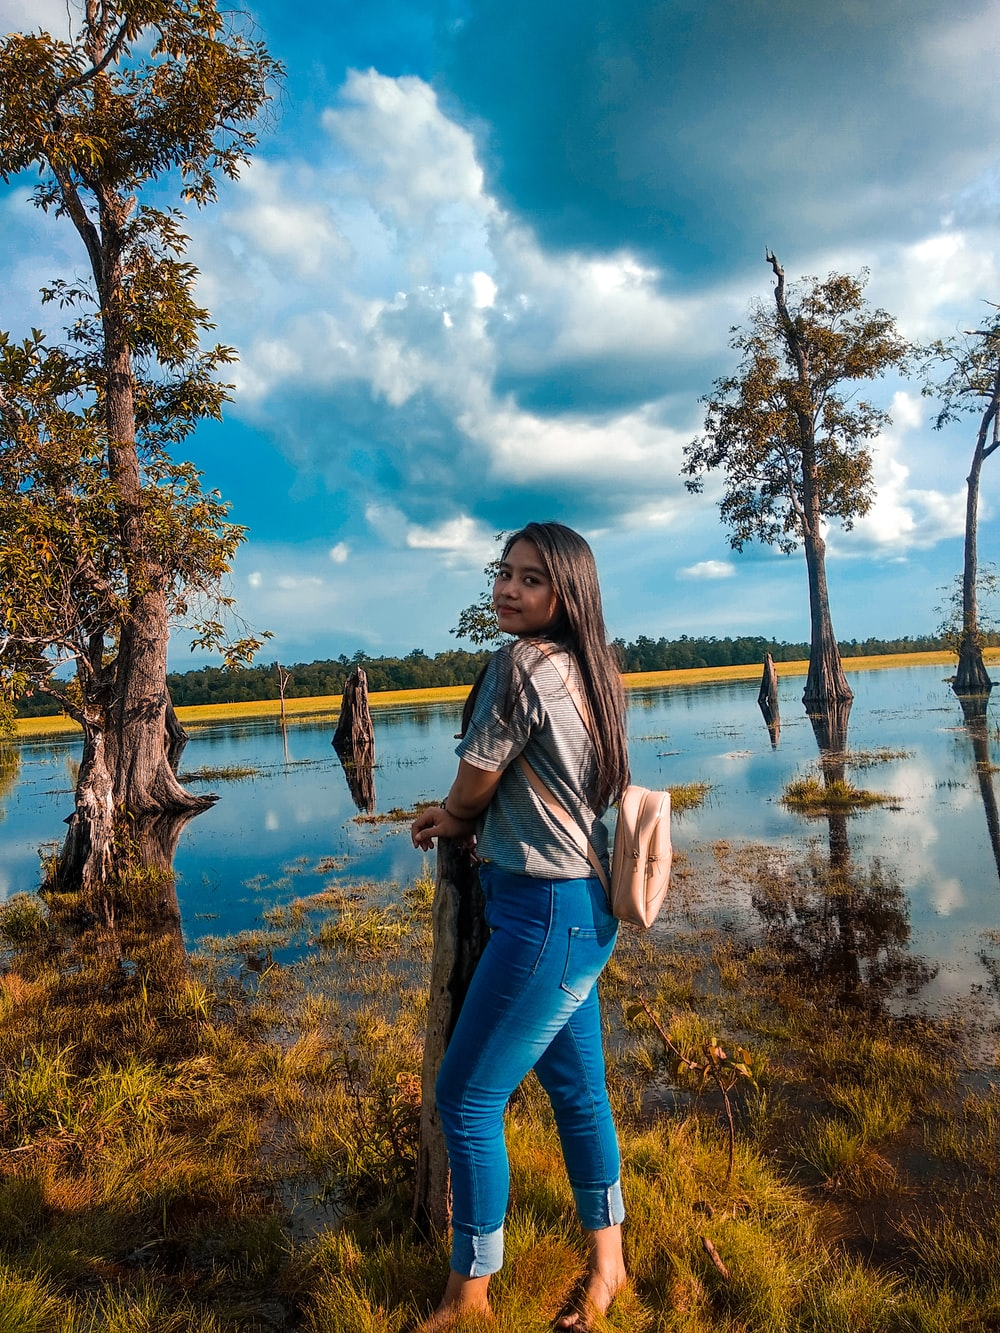 woman in blue denim jeans standing near body of water during daytime